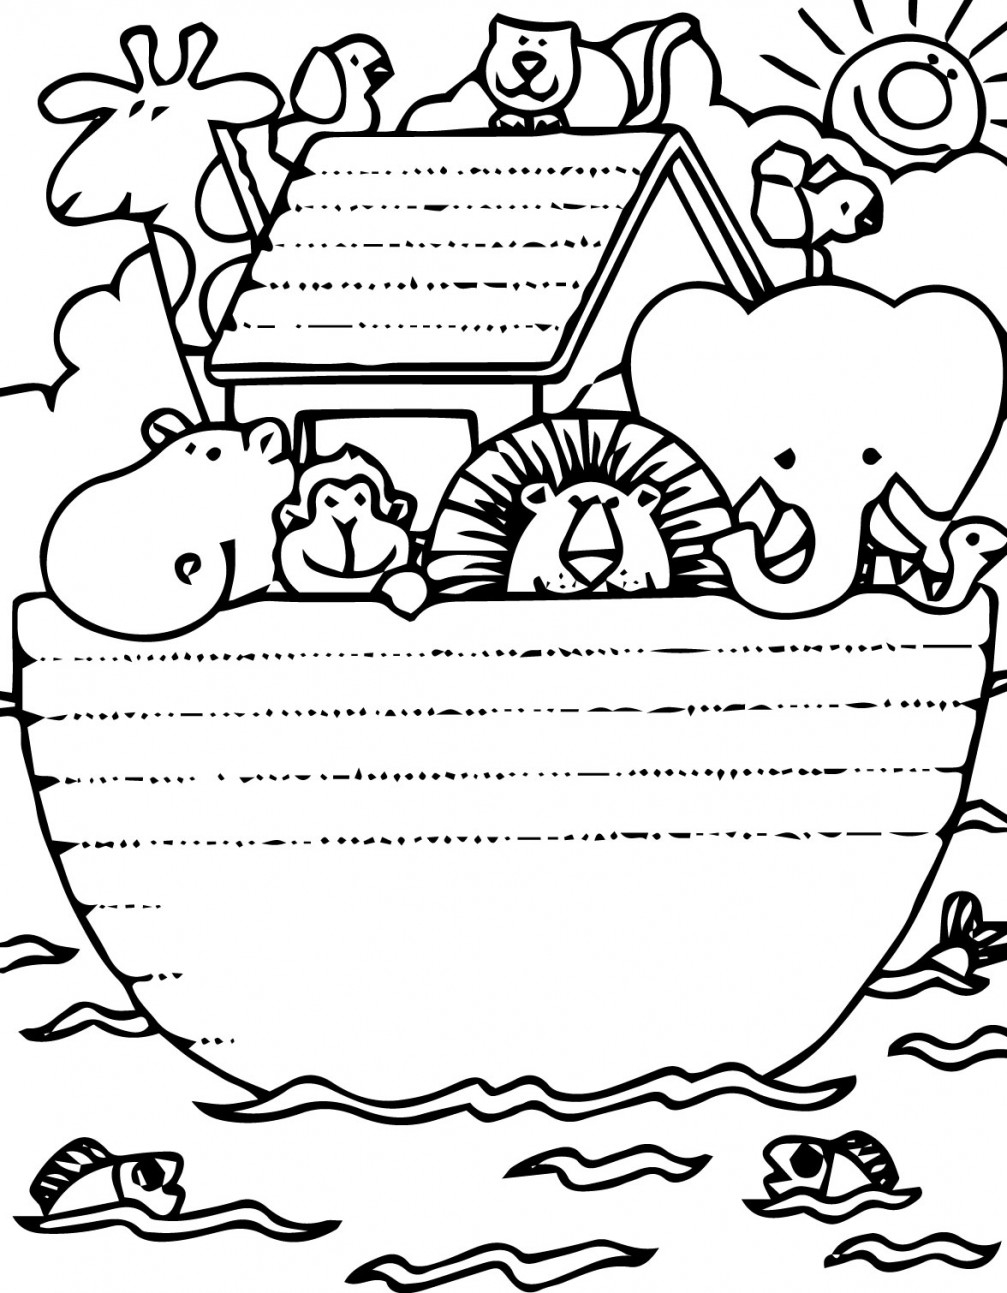 noah's ark printable coloring pages - sunday school on noahs ark craft and bible